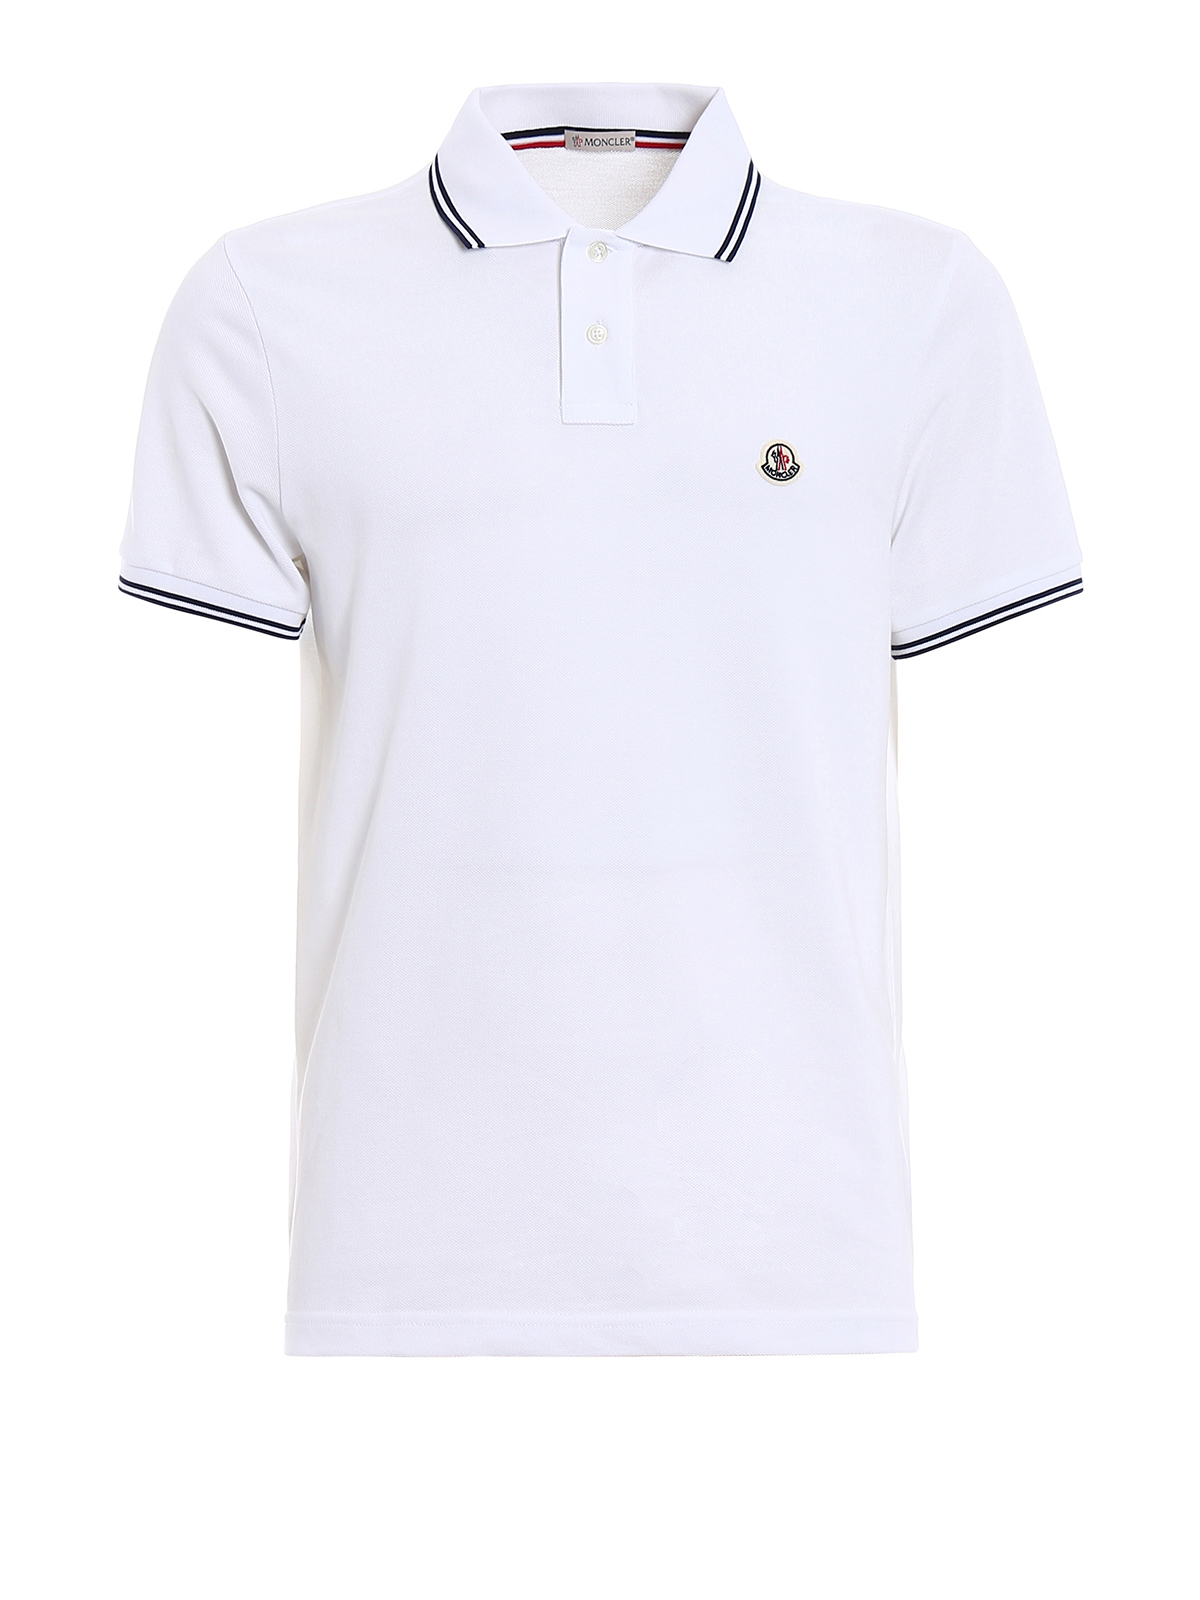 MONCLER: polo shirts - Striped collar and cuffs white polo